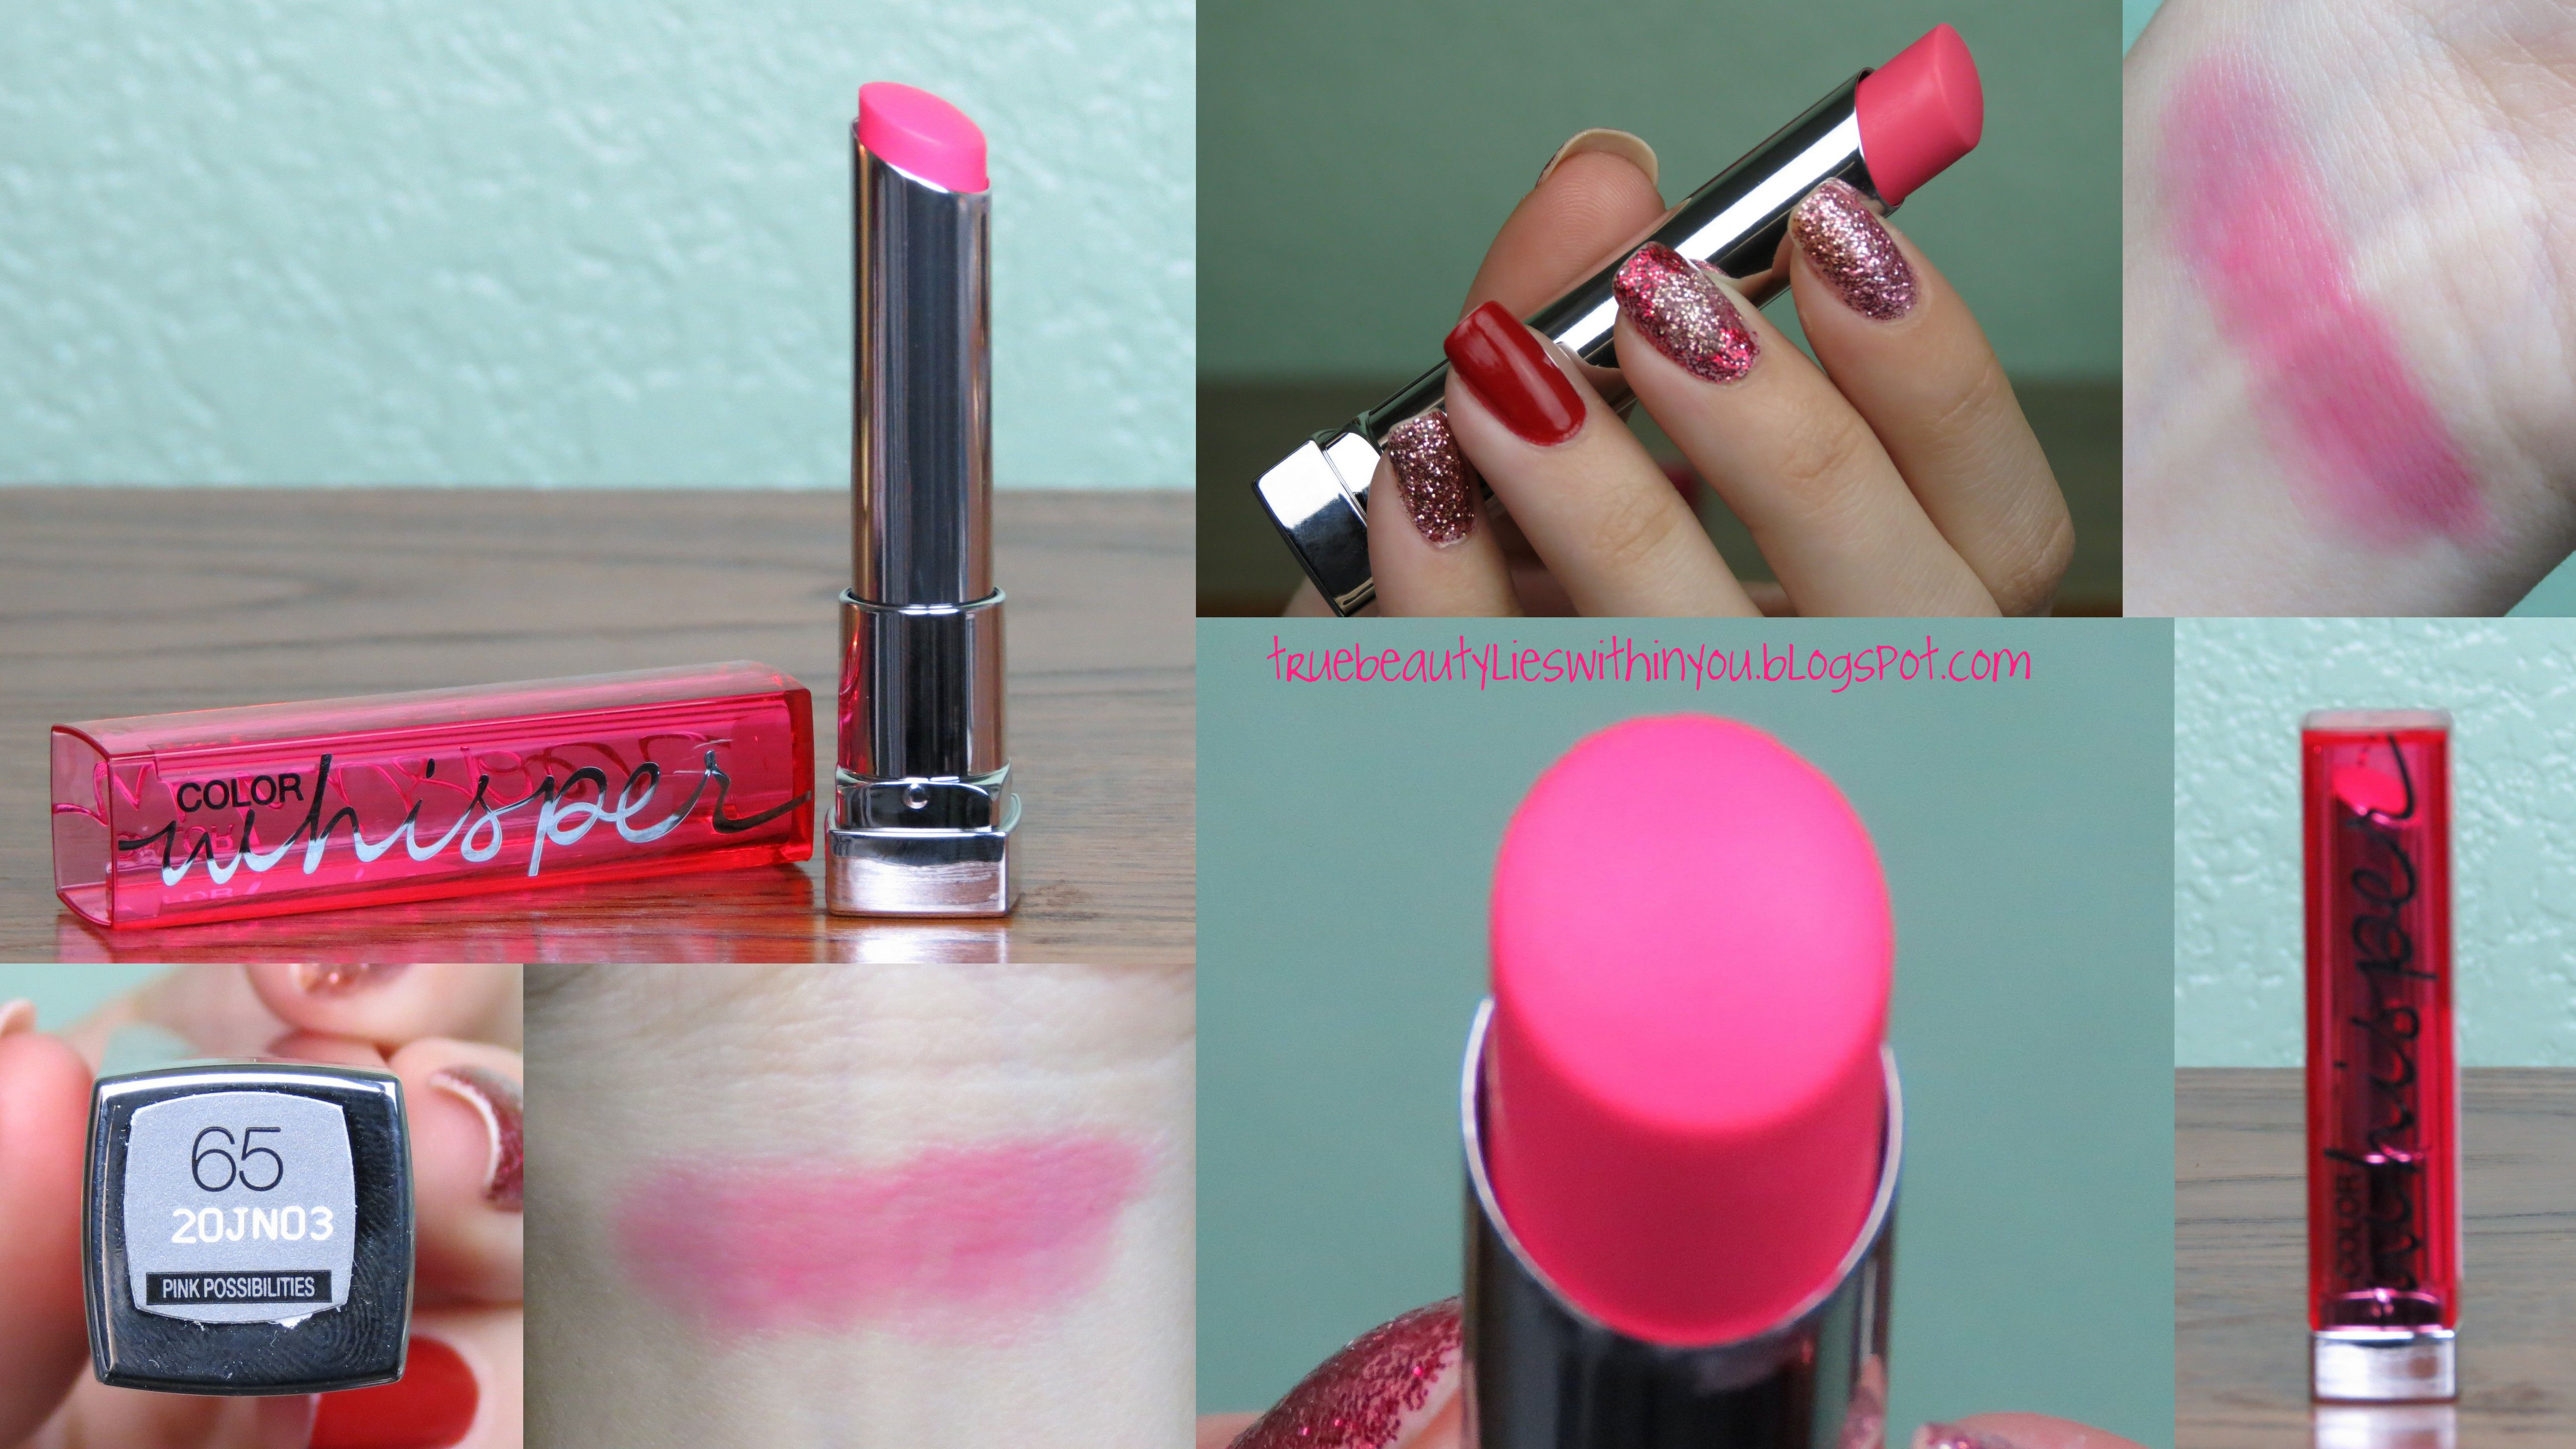 Swatch Central! Color whisper, Makeup cosmetics, Swatch